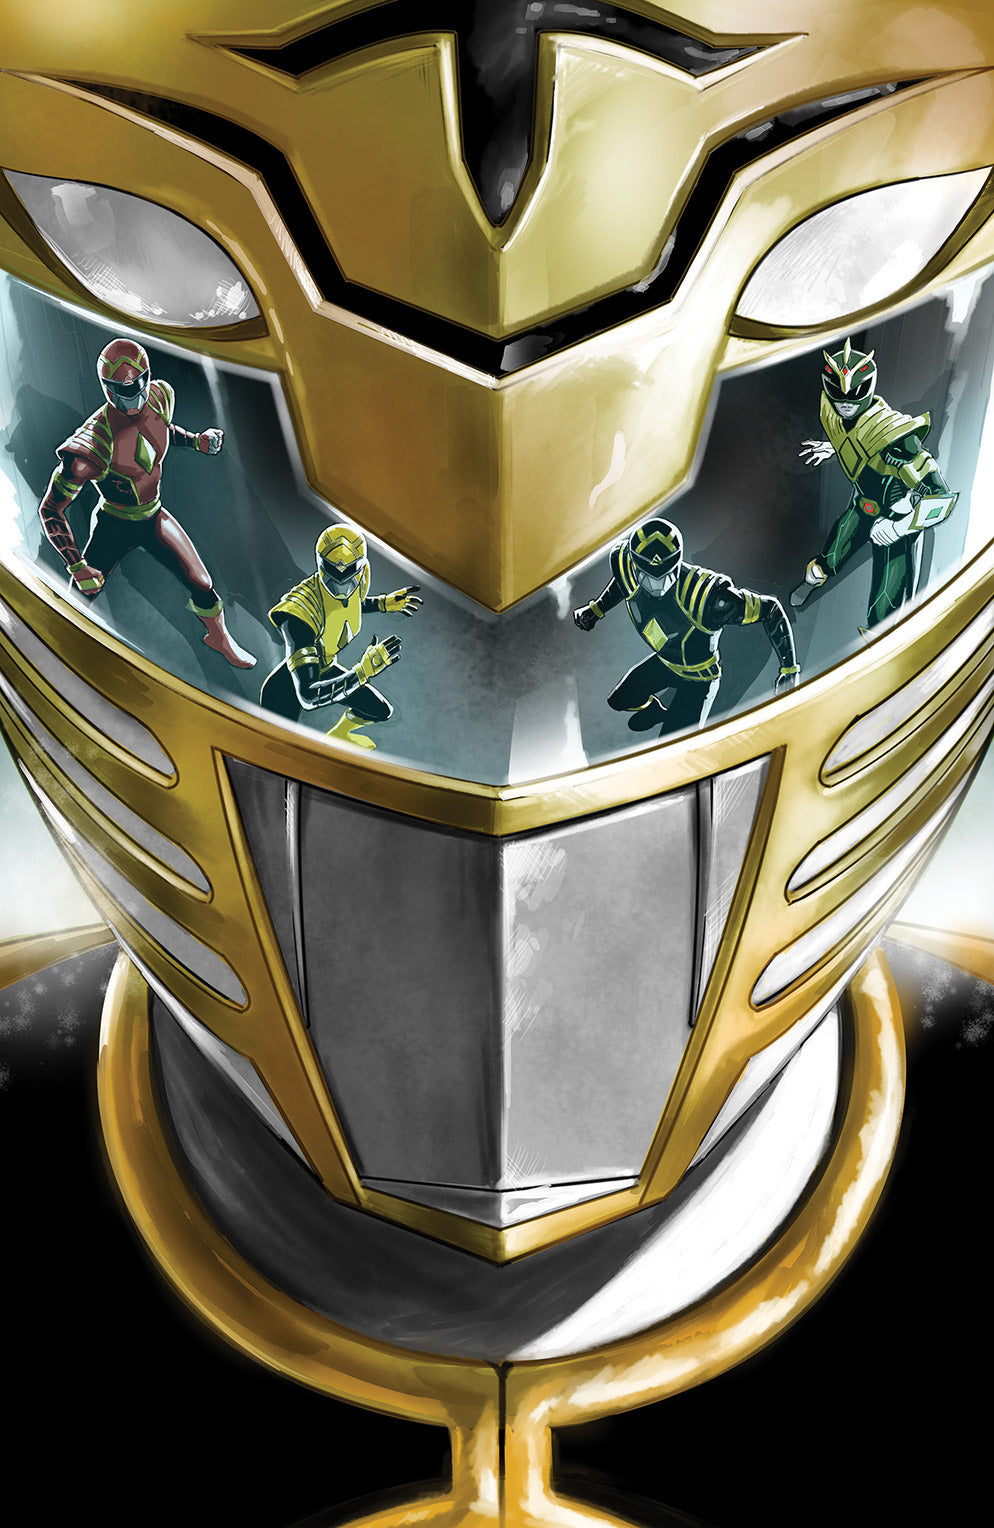 MIGHTY MORPHIN #1 DIEGO GALINDO Exclusive Virgin Variant Ltd 500